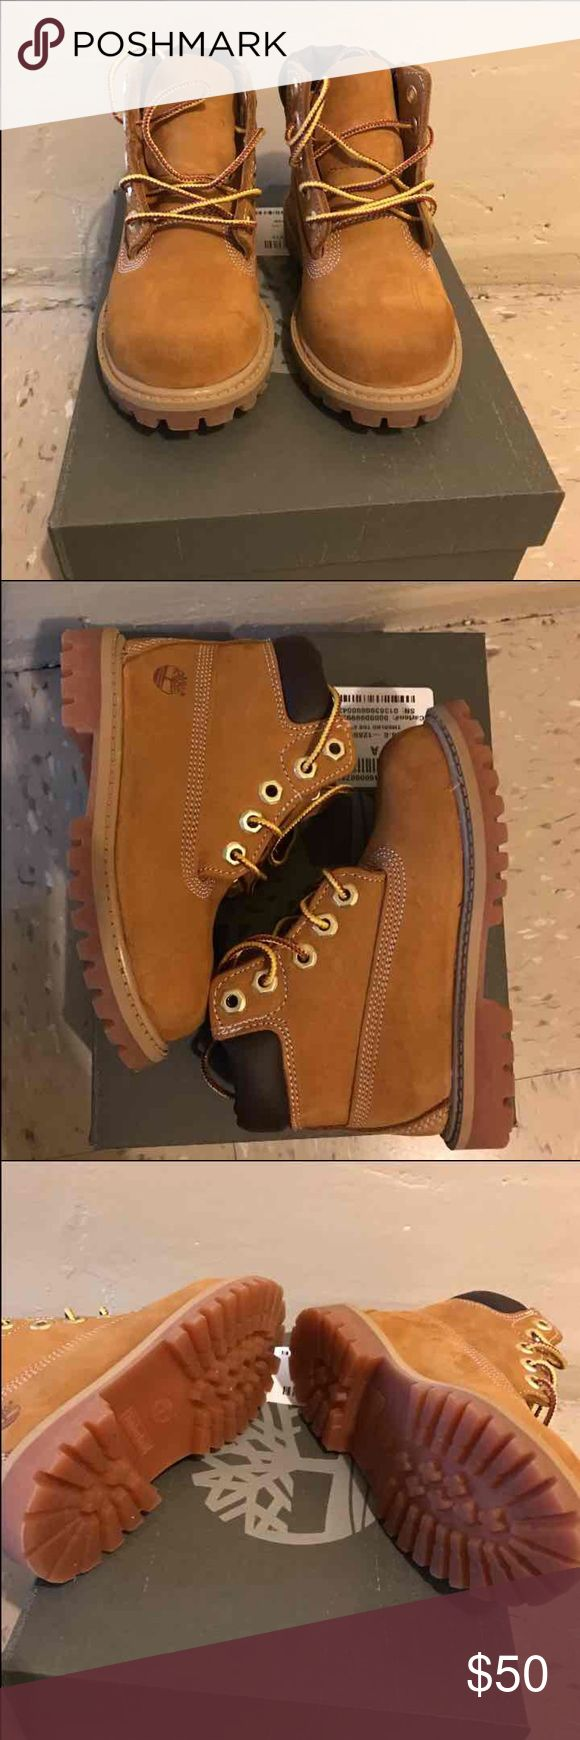 Toddler Timberlands Worn one time! Excellent condition. Size 8 in toddler Timberland Shoes Boots